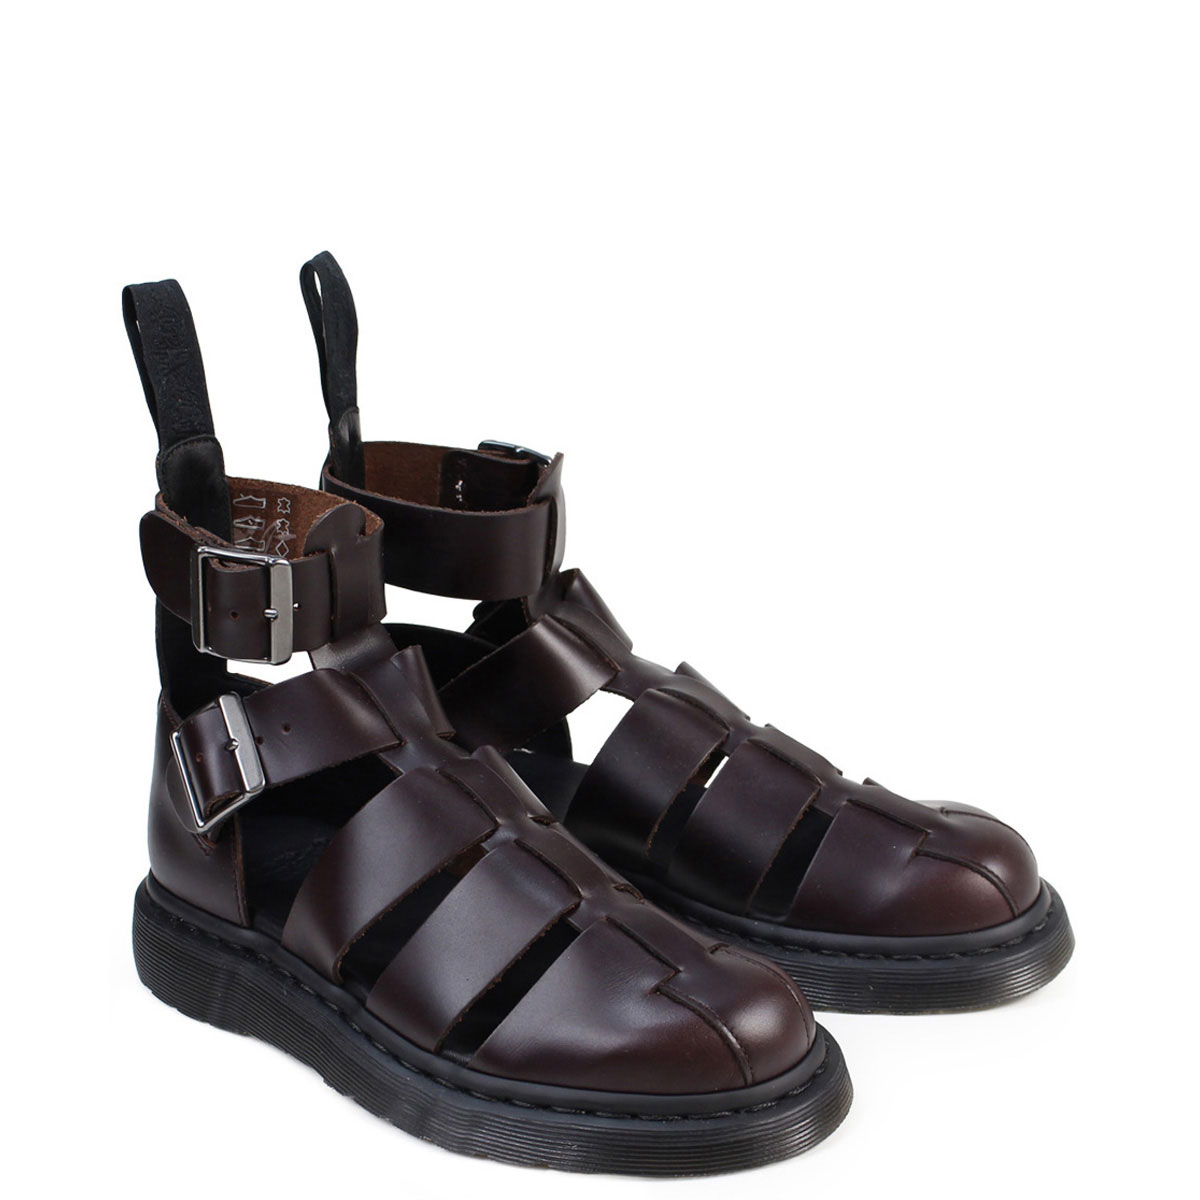 30cee19727c7 Dr.Martens GERALDO STRAP SANDALS doctor Martin sandals men gap Dis  R20769211 cherry red  the 4 24 additional arrival   194